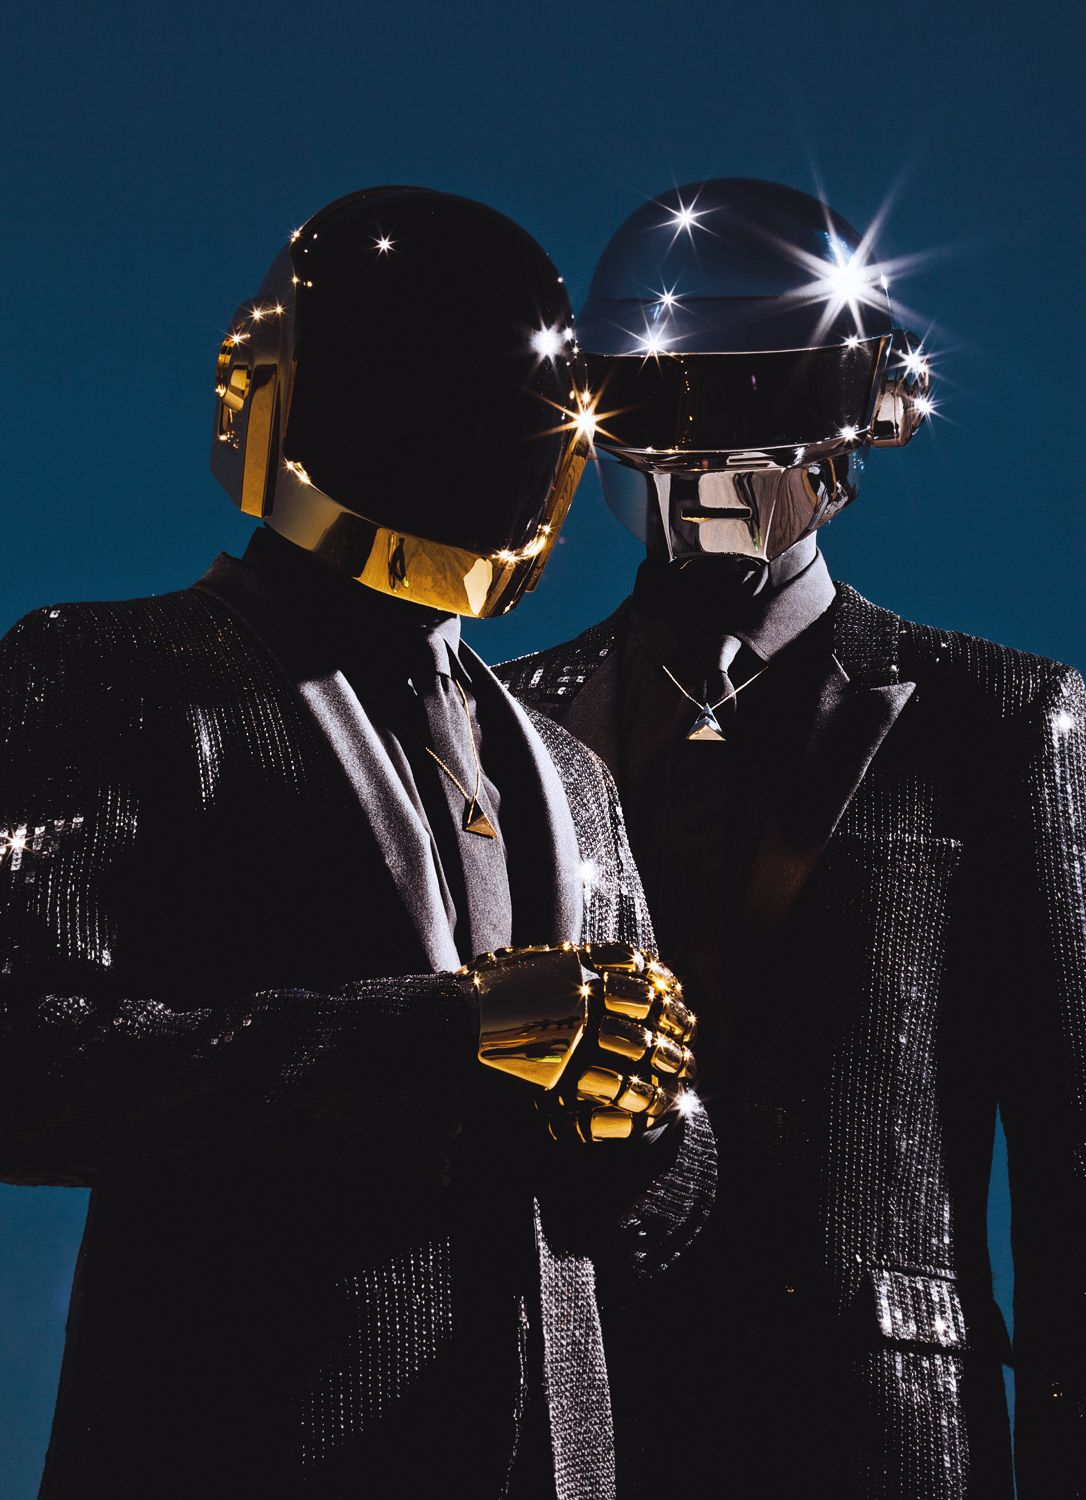 Cover Story: Daft Punk | Daft punk, Music artists, Punk art